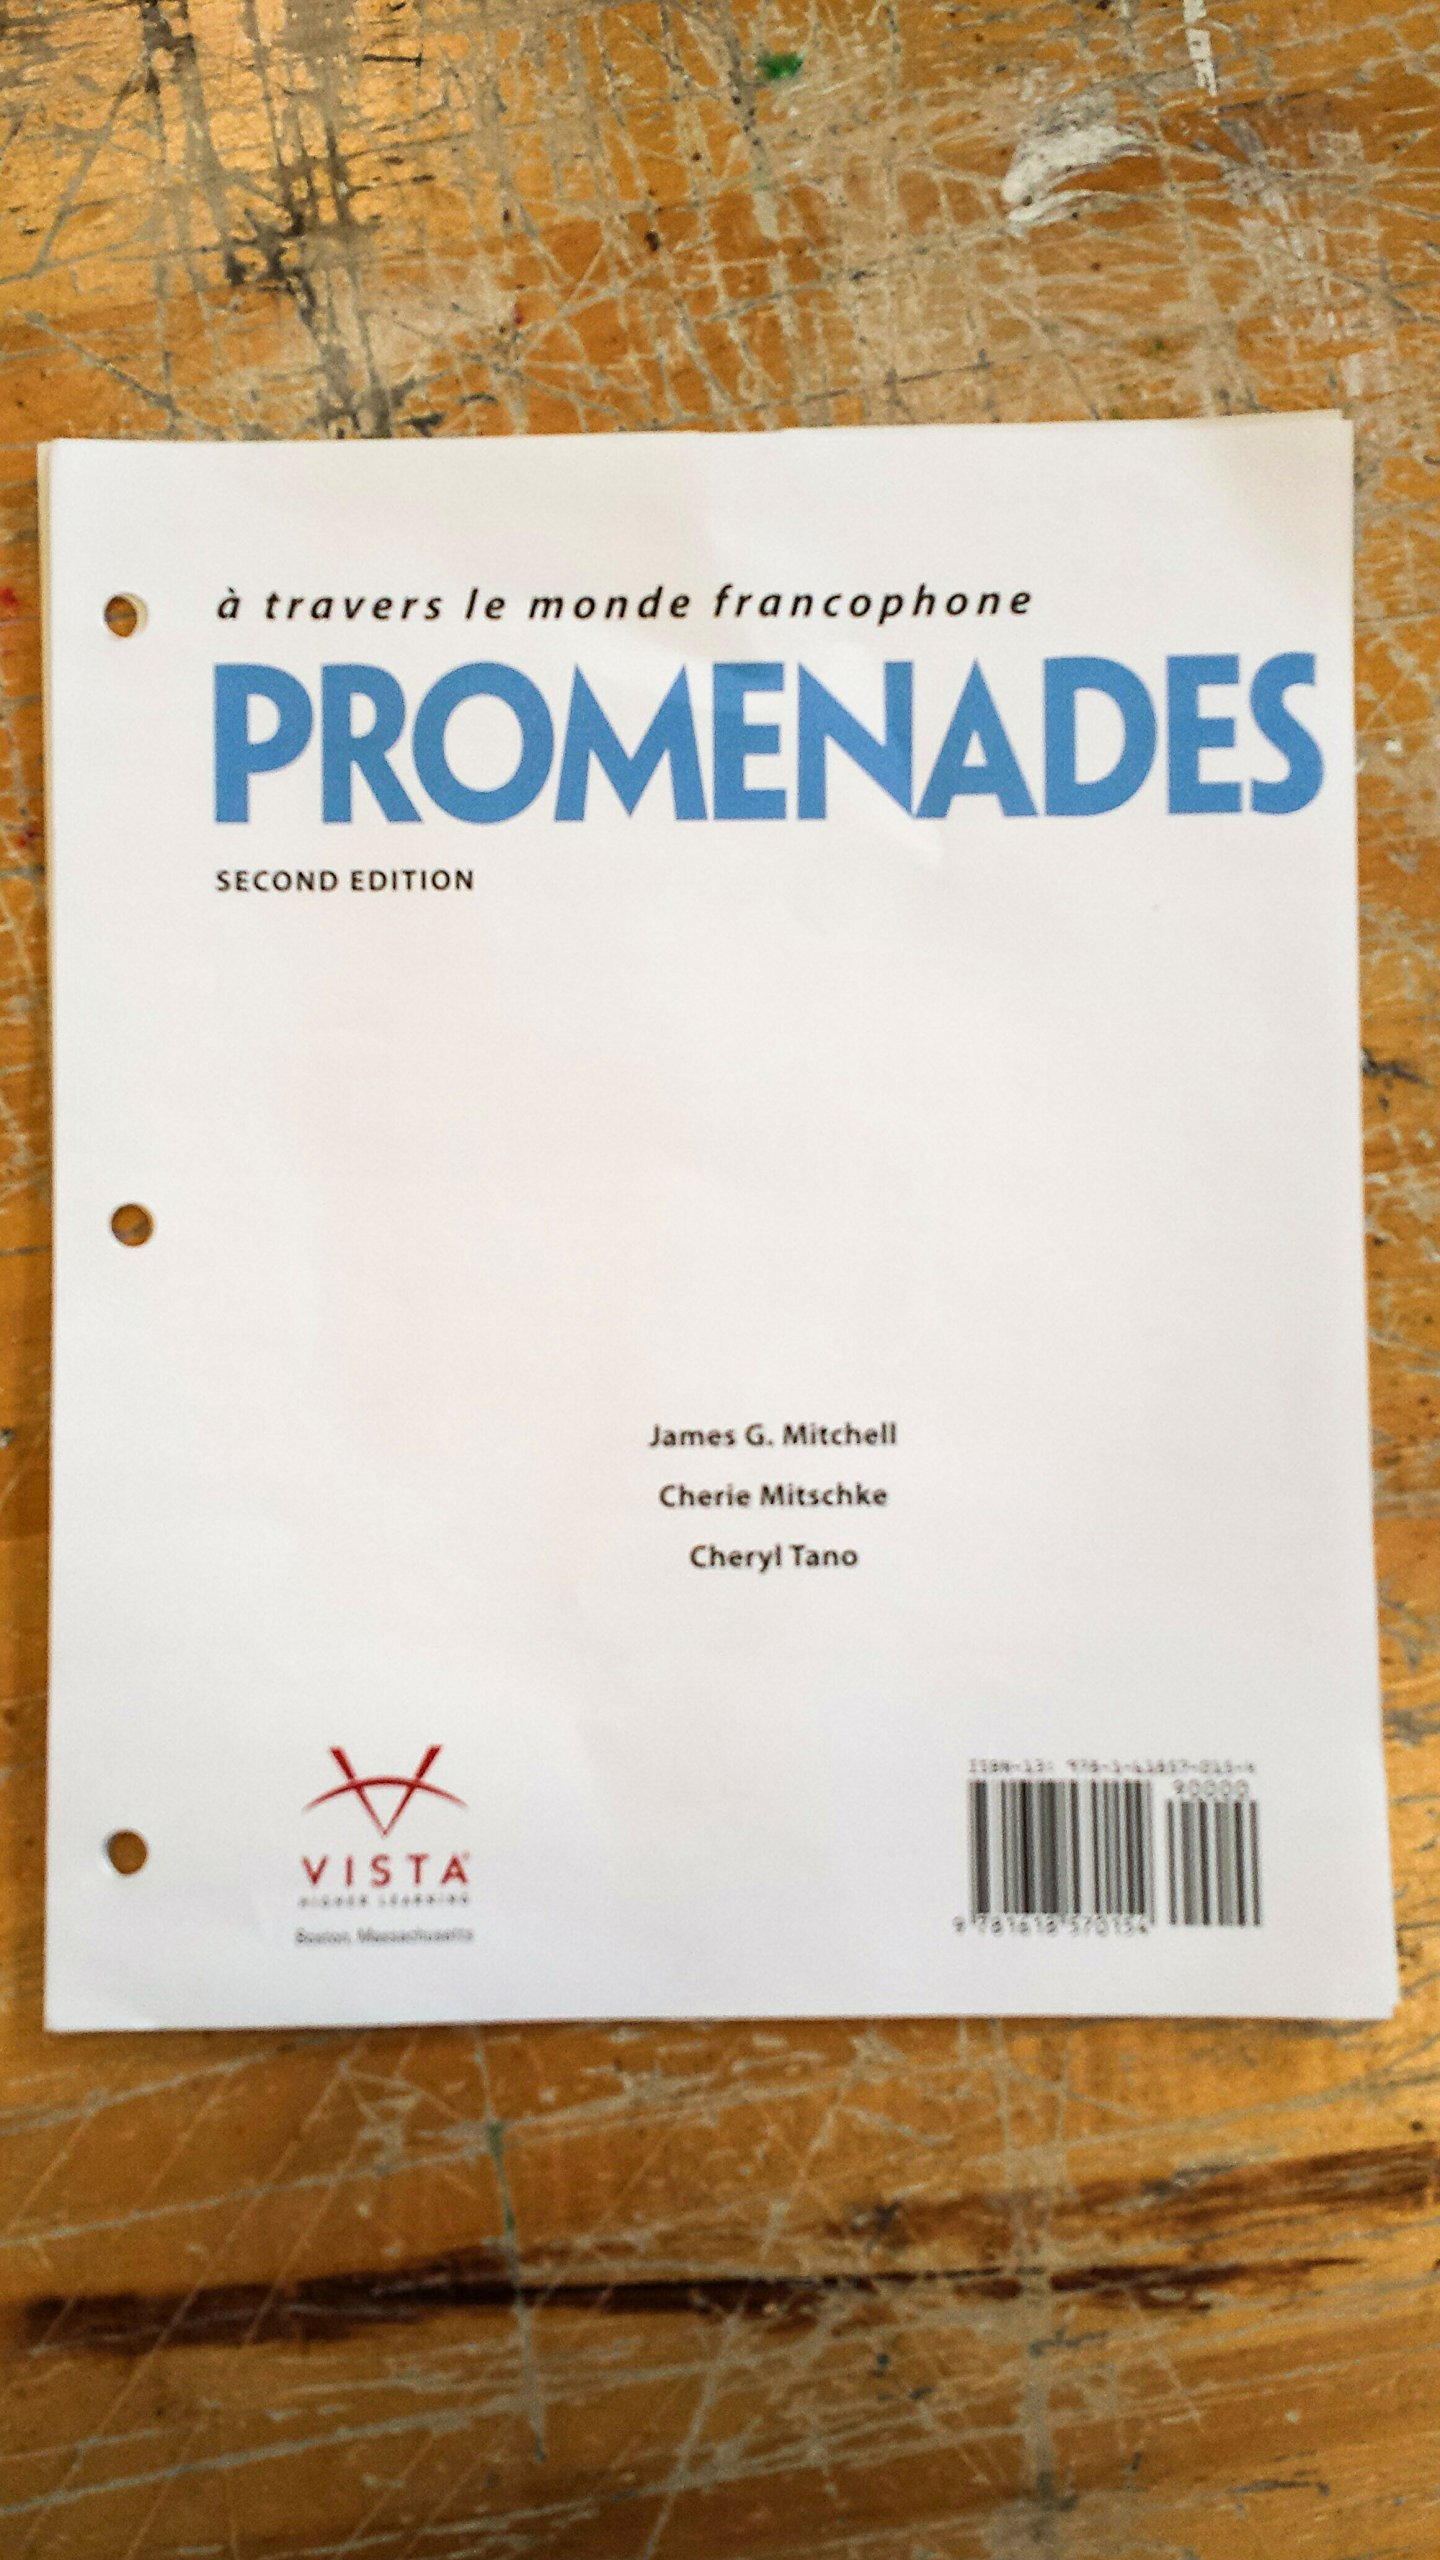 Promenades 2nd loose leaf student textbook text only no code promenades 2nd loose leaf student textbook text only no code james g mitchell cherie mitschke cheryl tano 9781618570154 amazon books fandeluxe Gallery